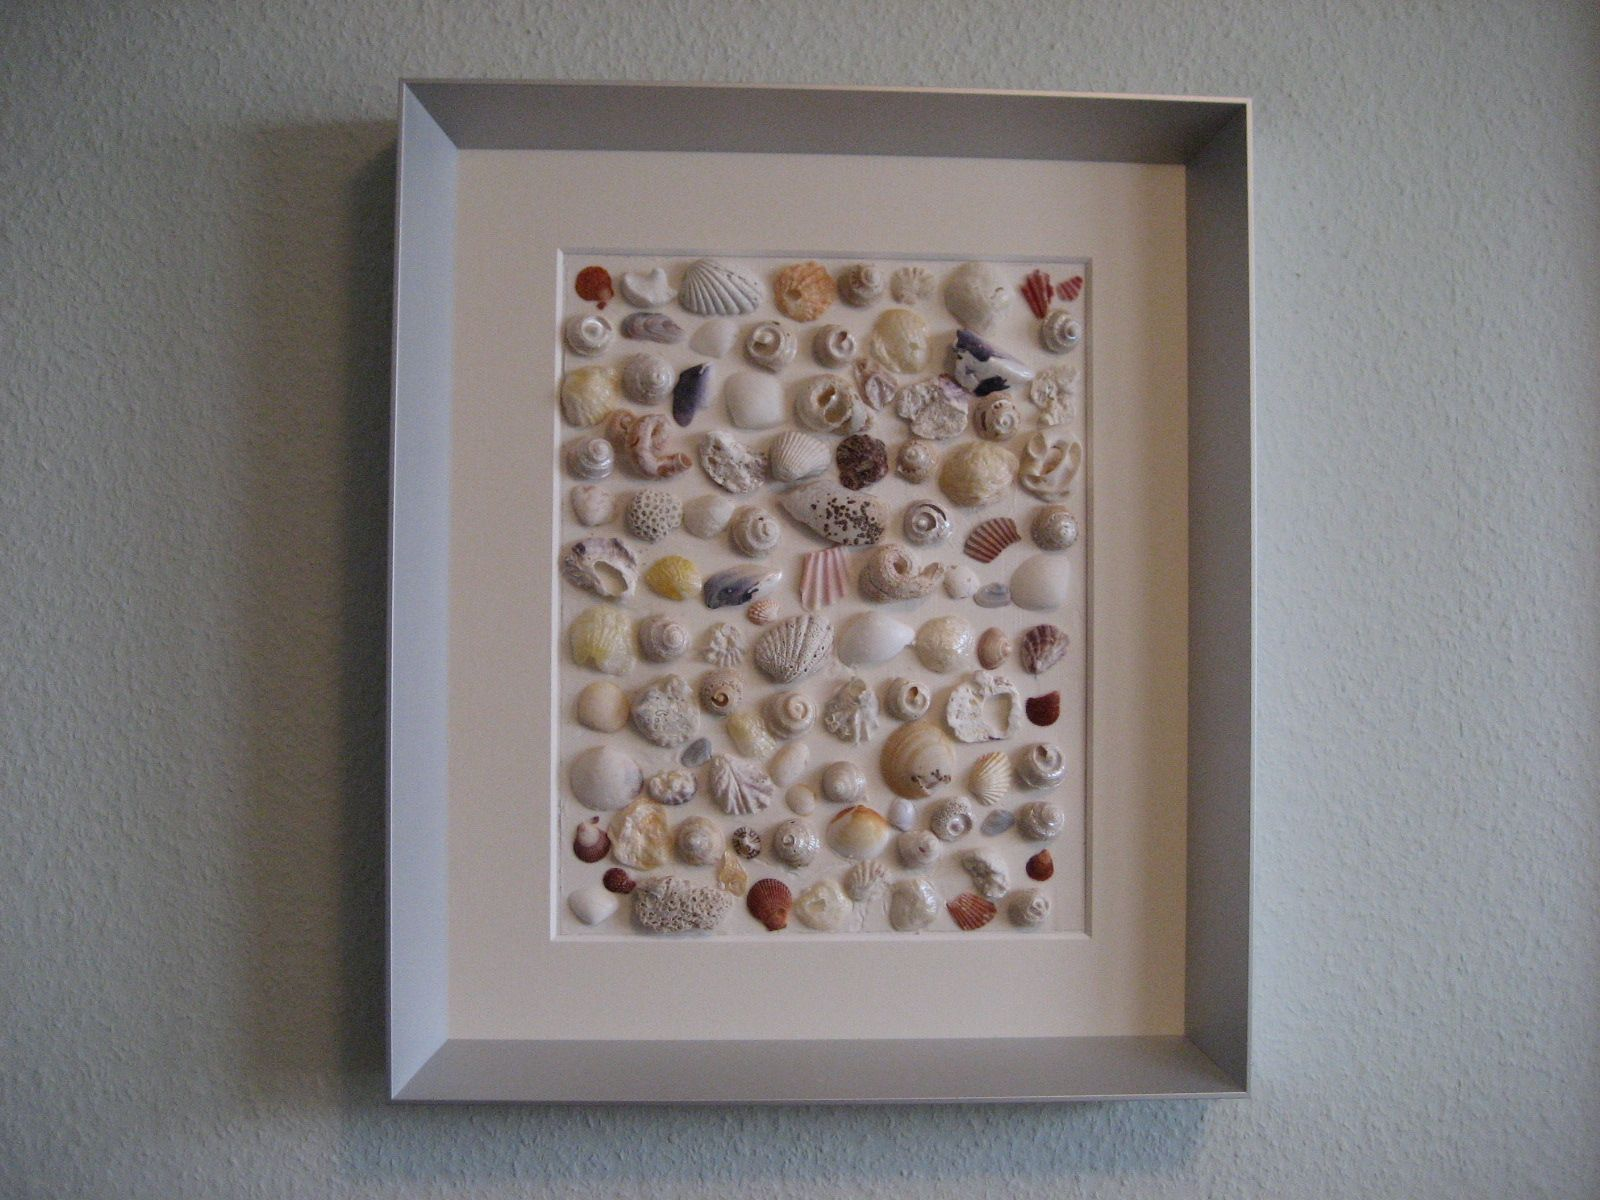 Decorative seashell craft ideas - Find This Pin And More On Craft Ideas